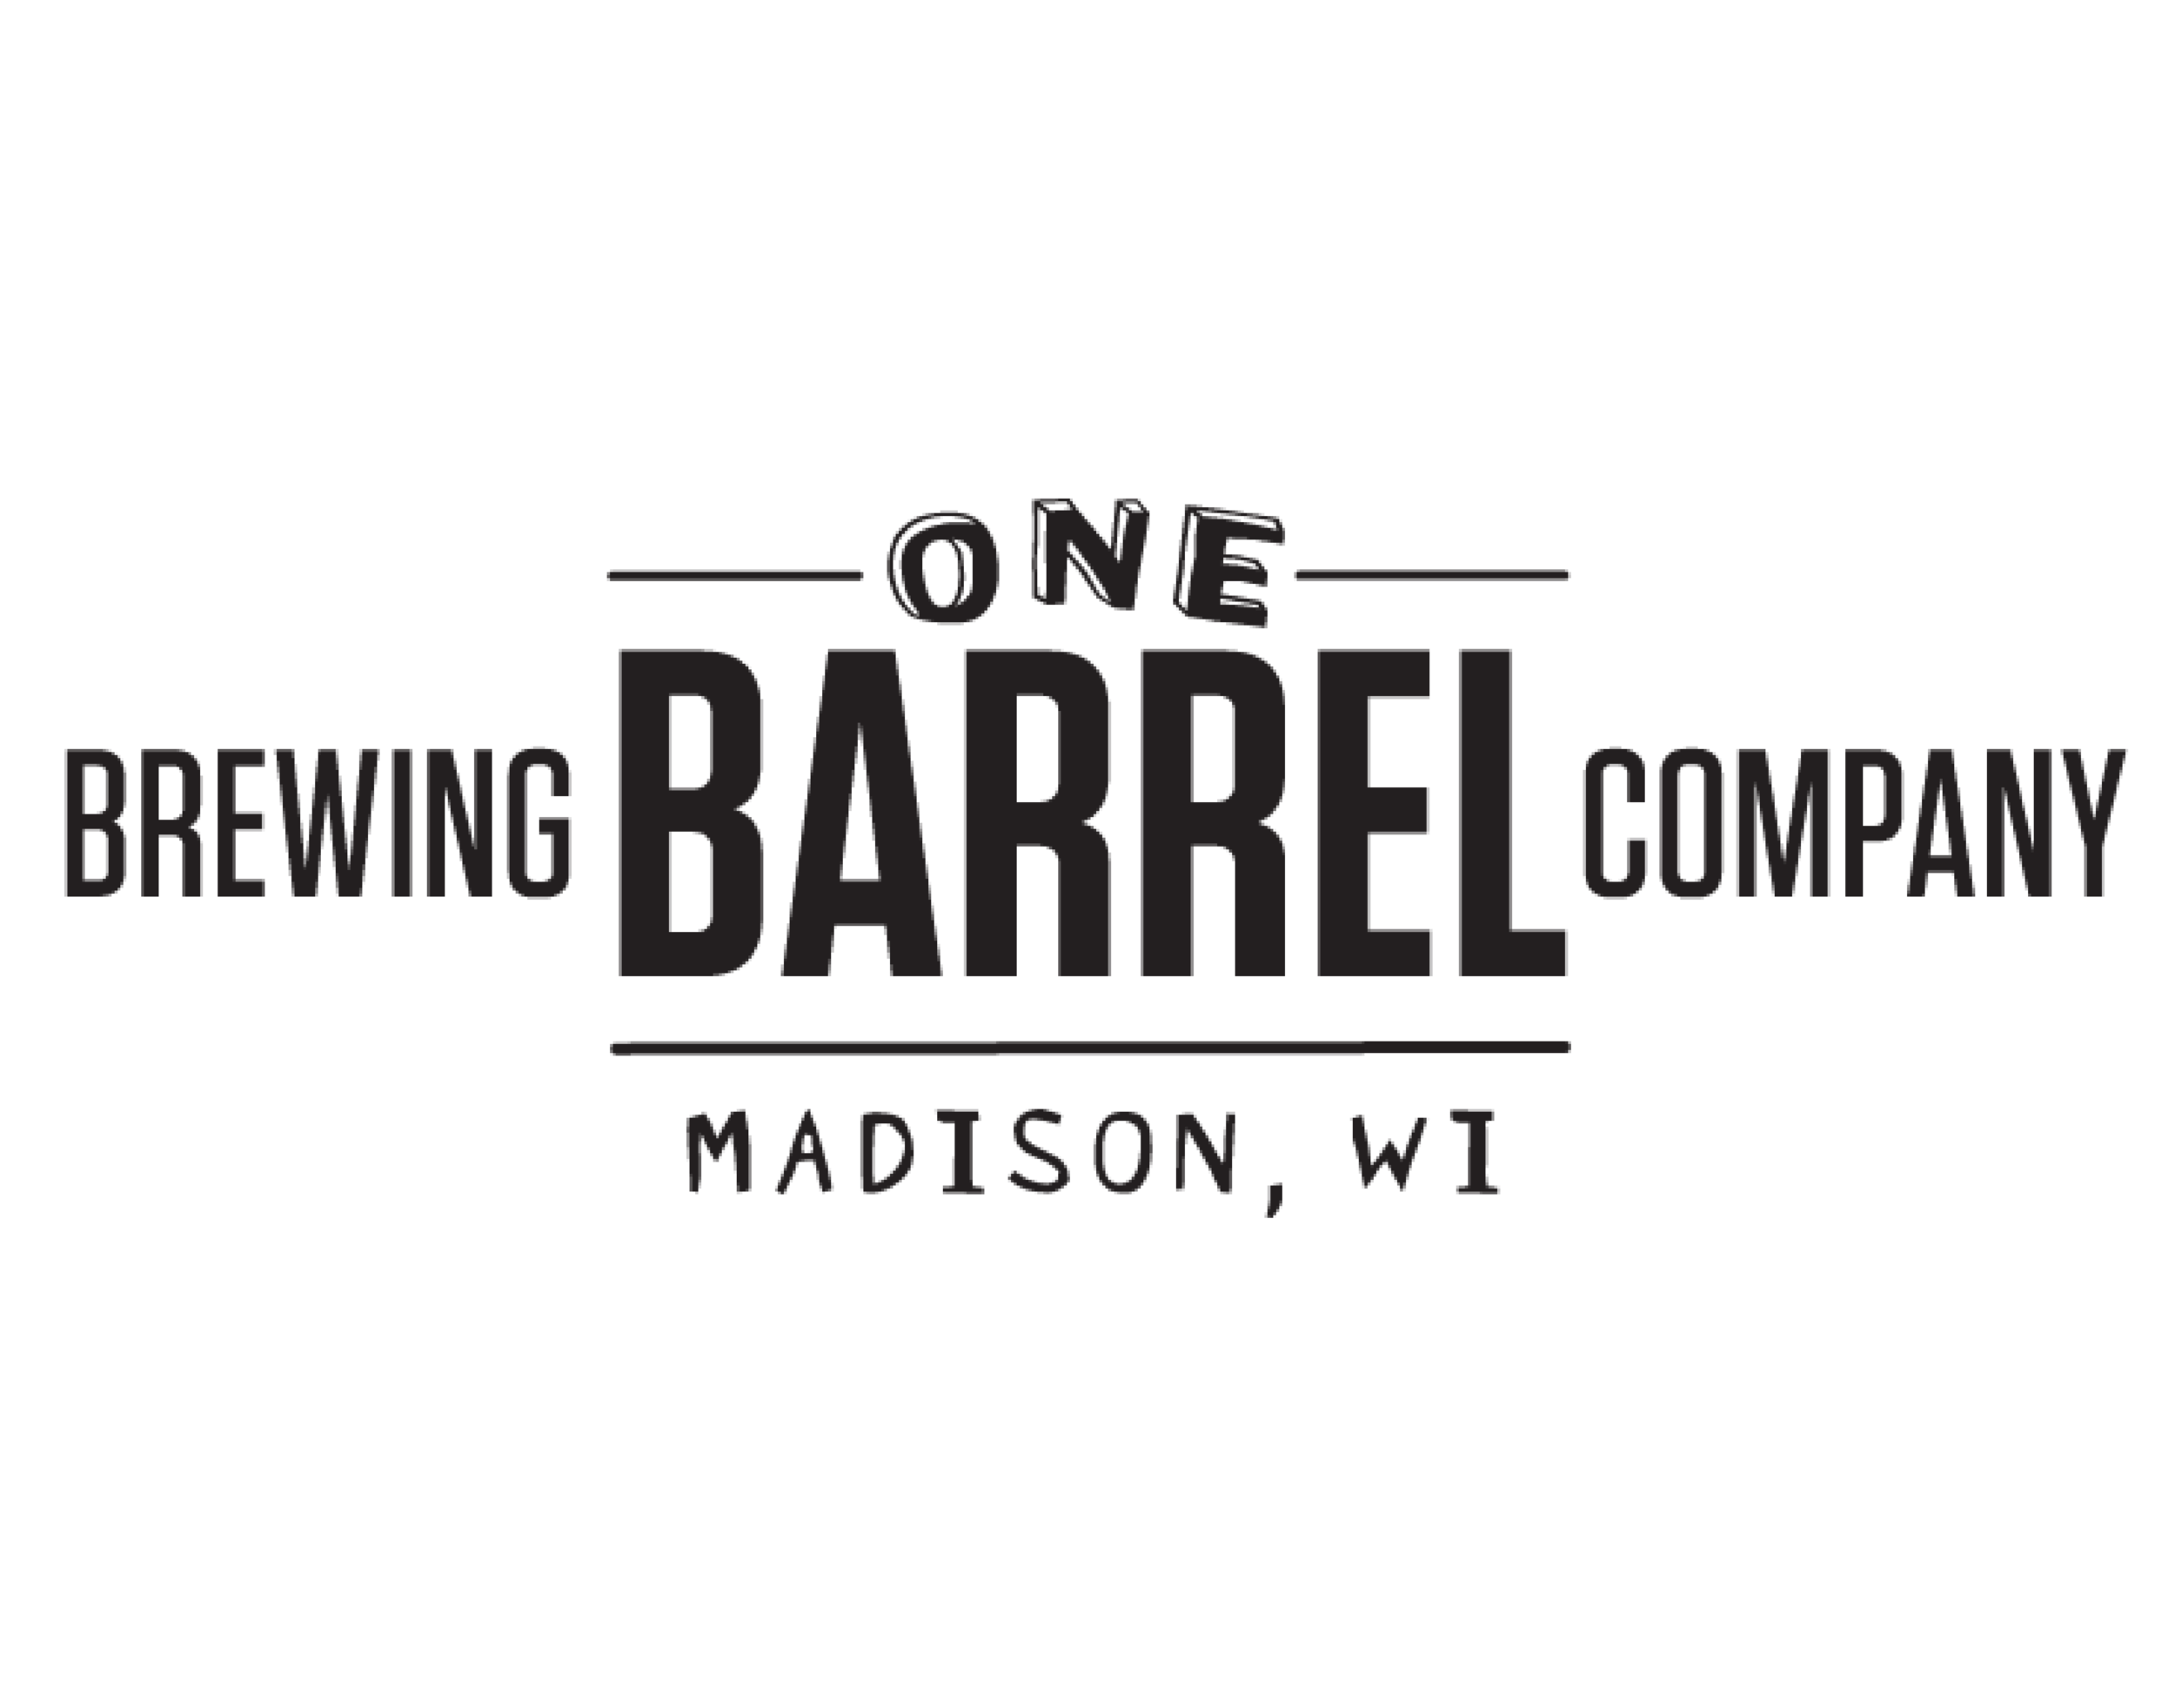 One Barrel Brewing Company logo. Links to One Barrel Brewing Company website.